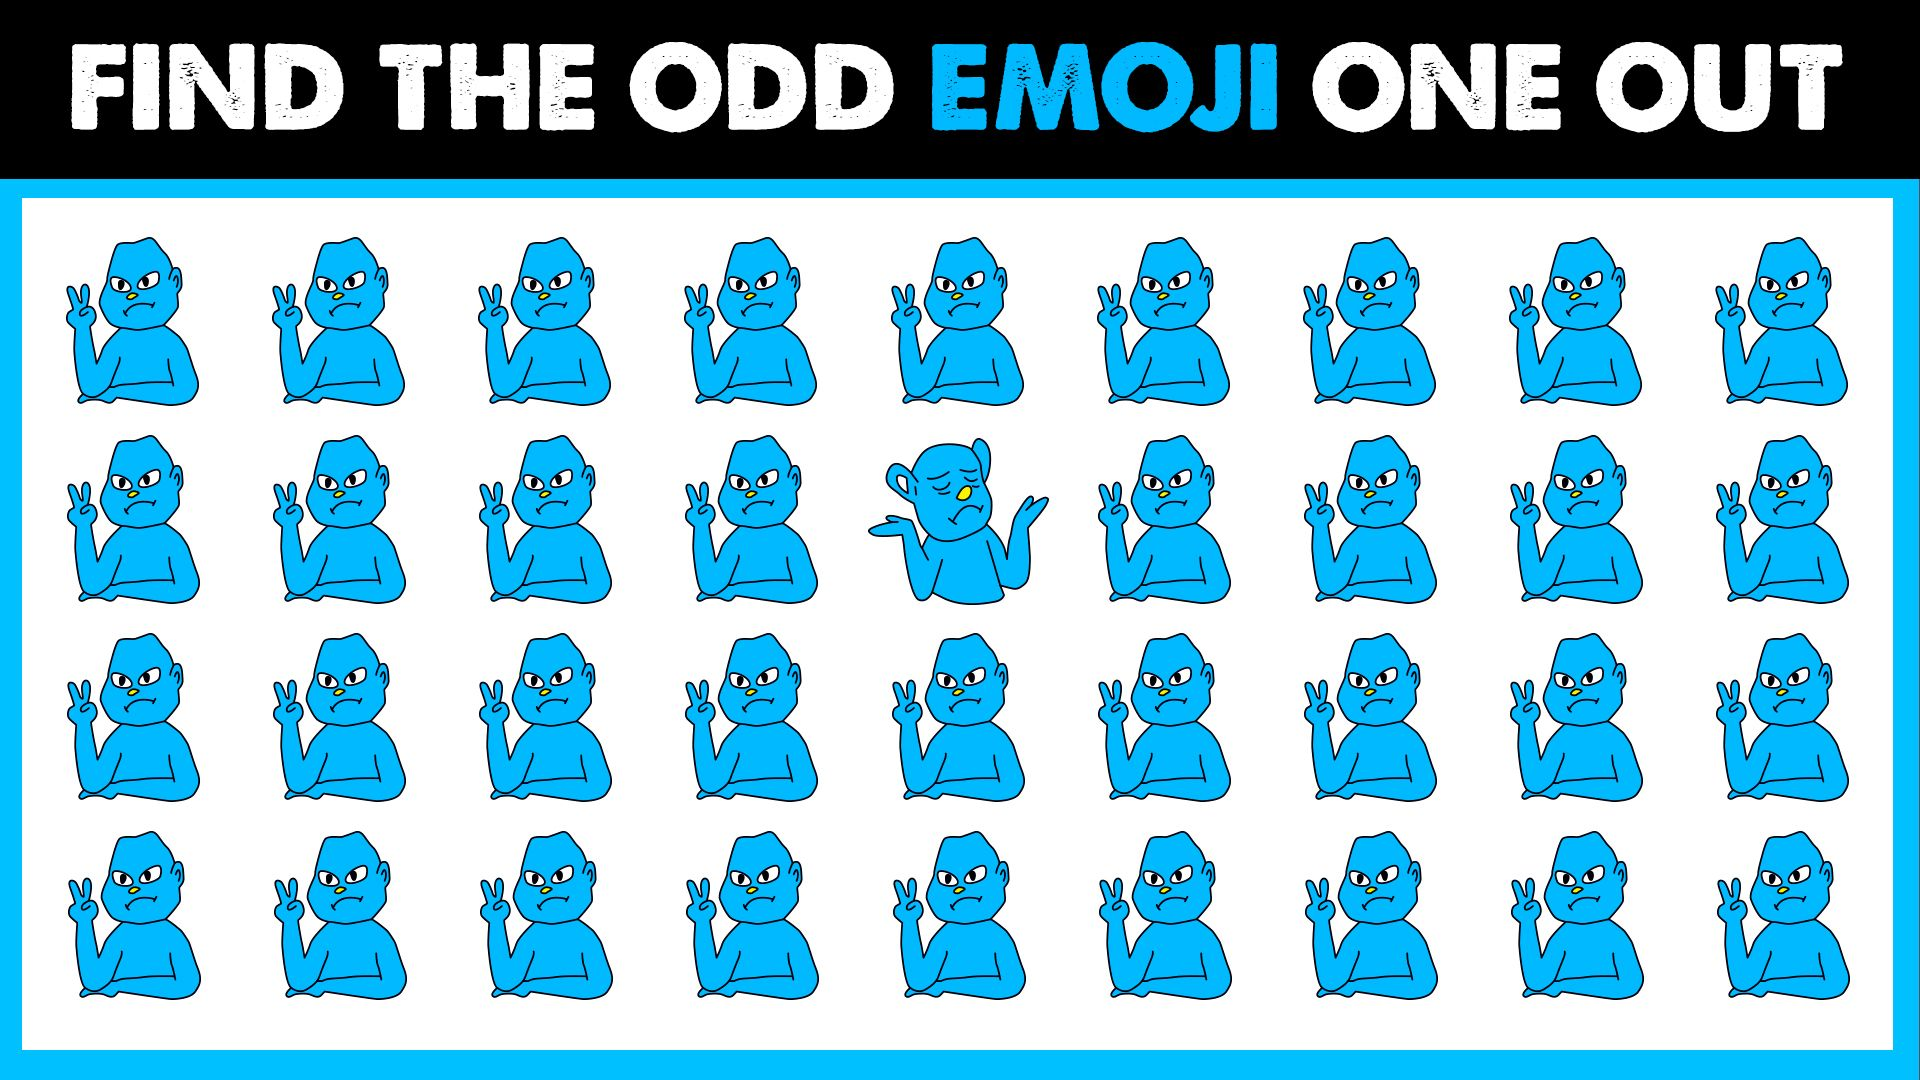 Emoji Odd One Out Puzzles No 140 Find The Difference Spot The Odd One Out Riddlescop In 2021 Guess The Emoji The Odd Ones Out Time Running Out